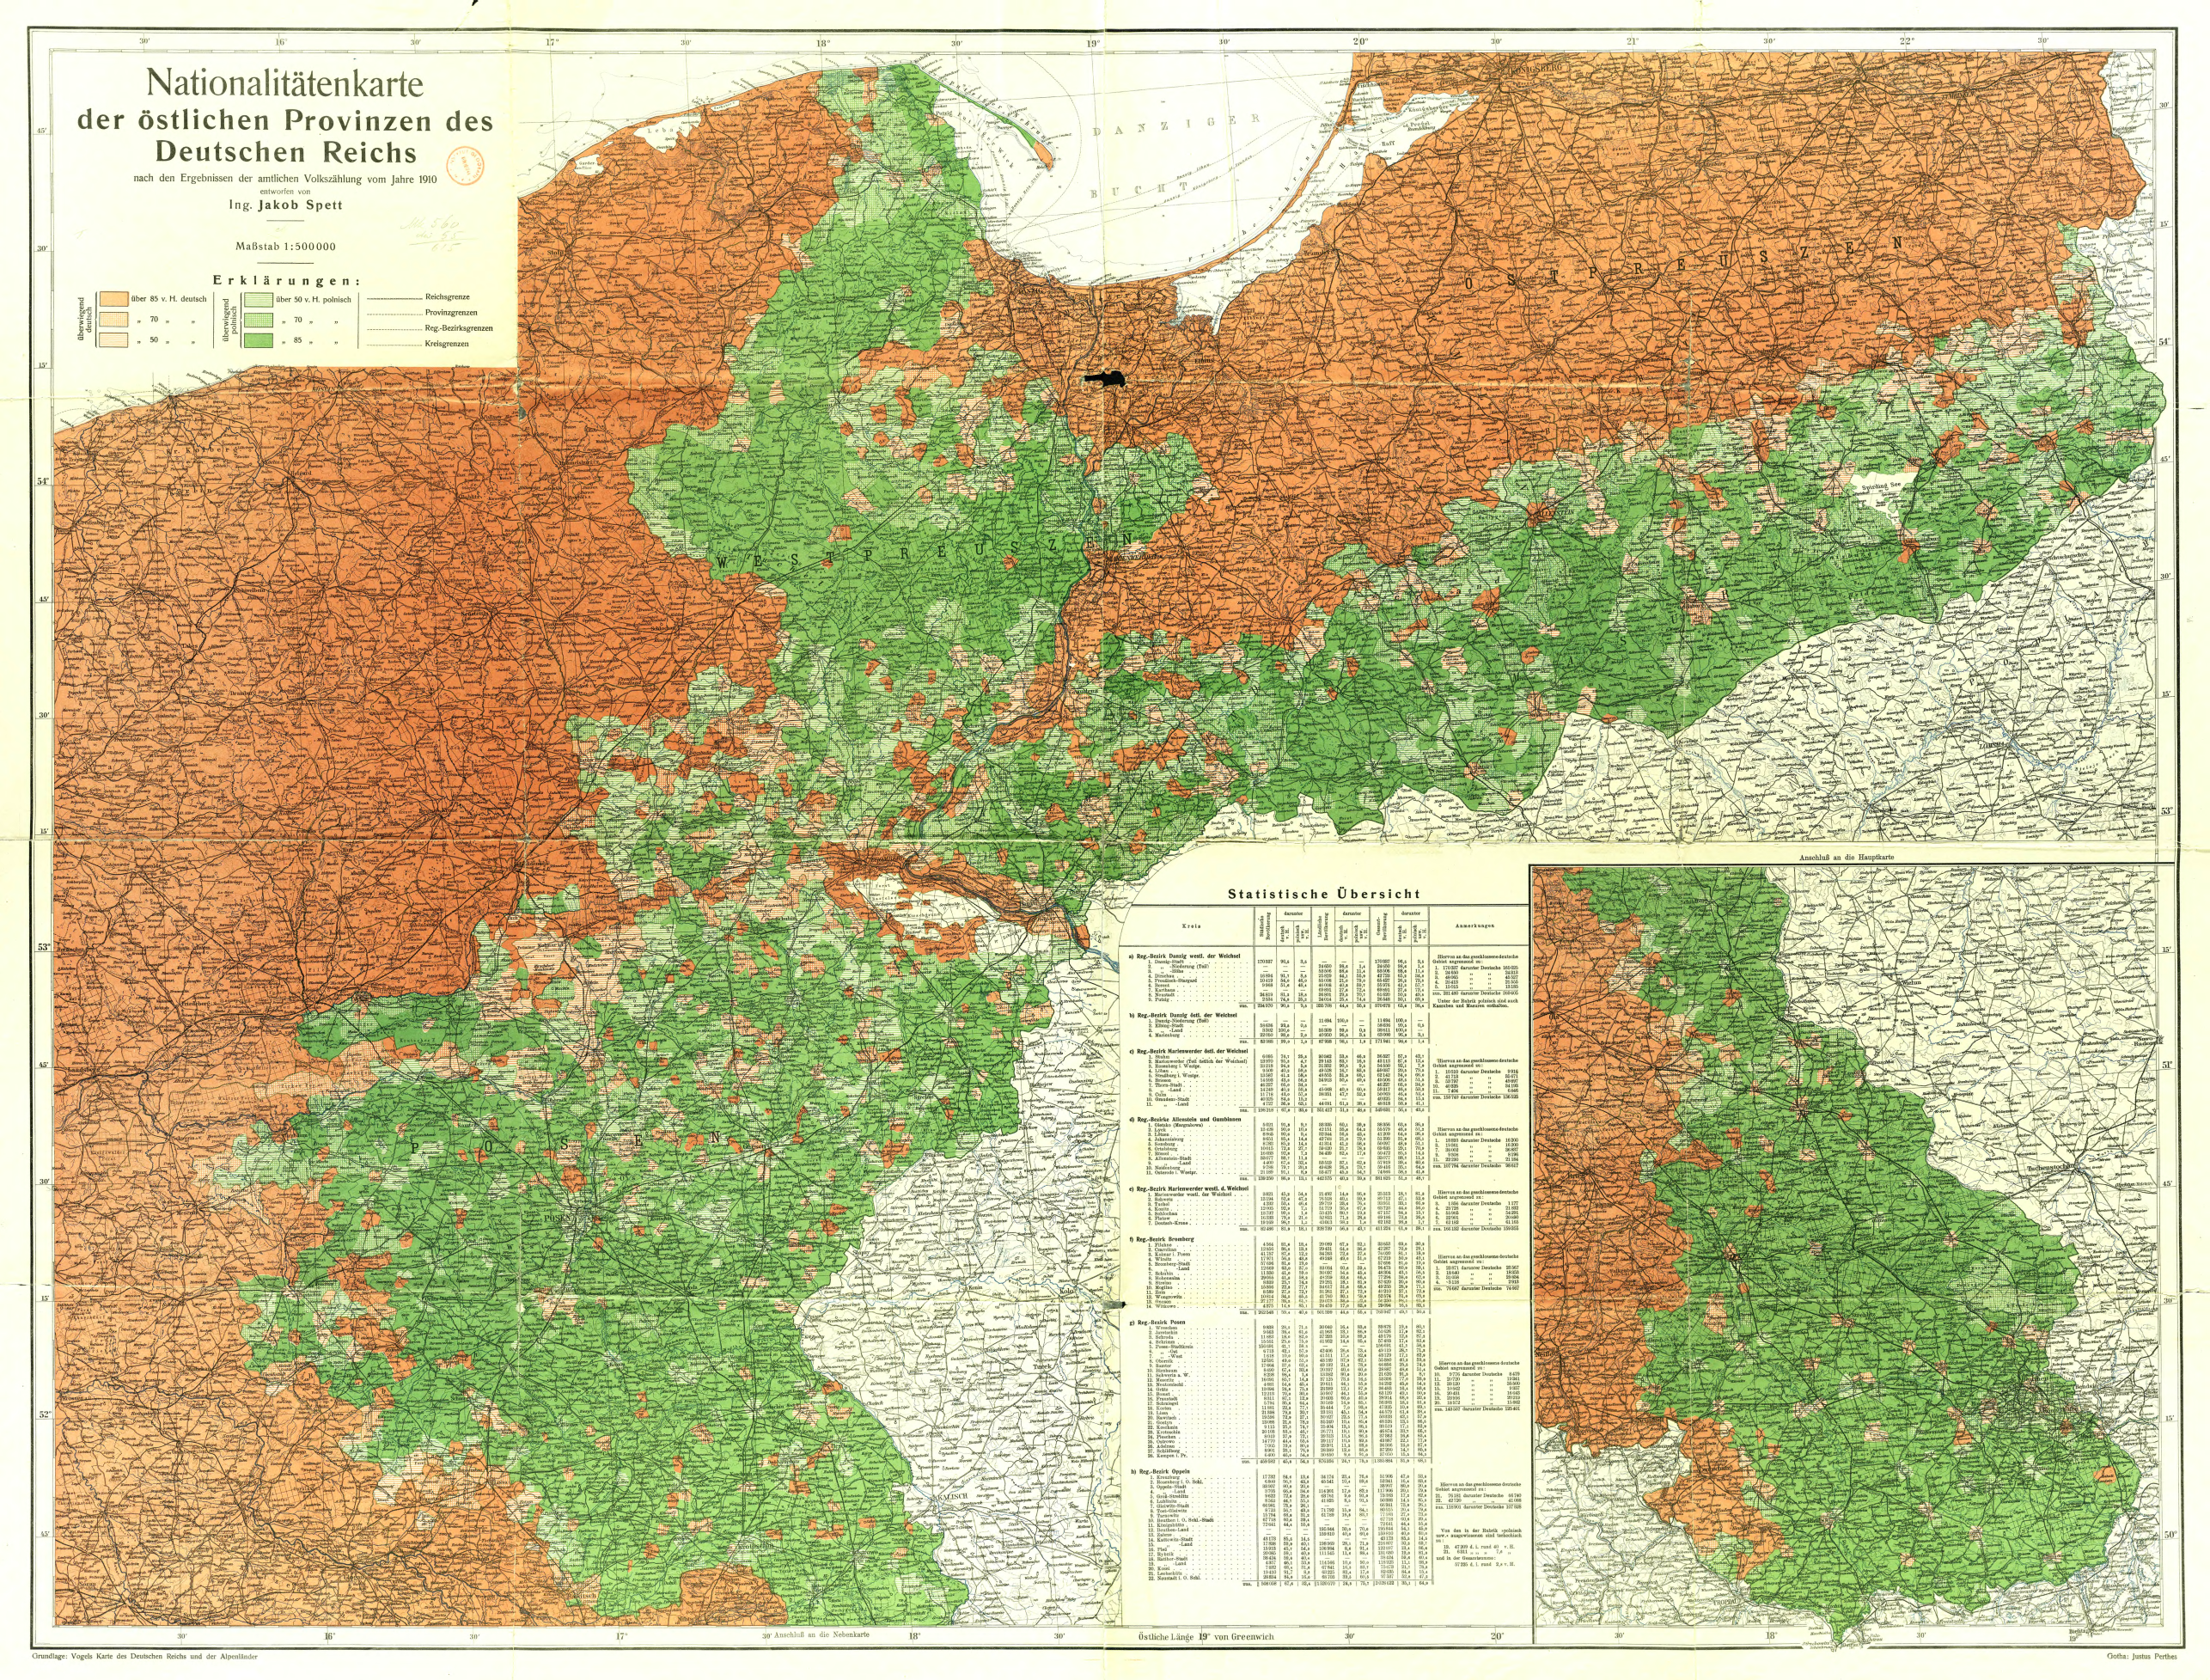 File Map Of Nationalities Of Eastern Provinces Of German Empire According To German Census Of 1910 By Jakob Spett Png Wikimedia Commons